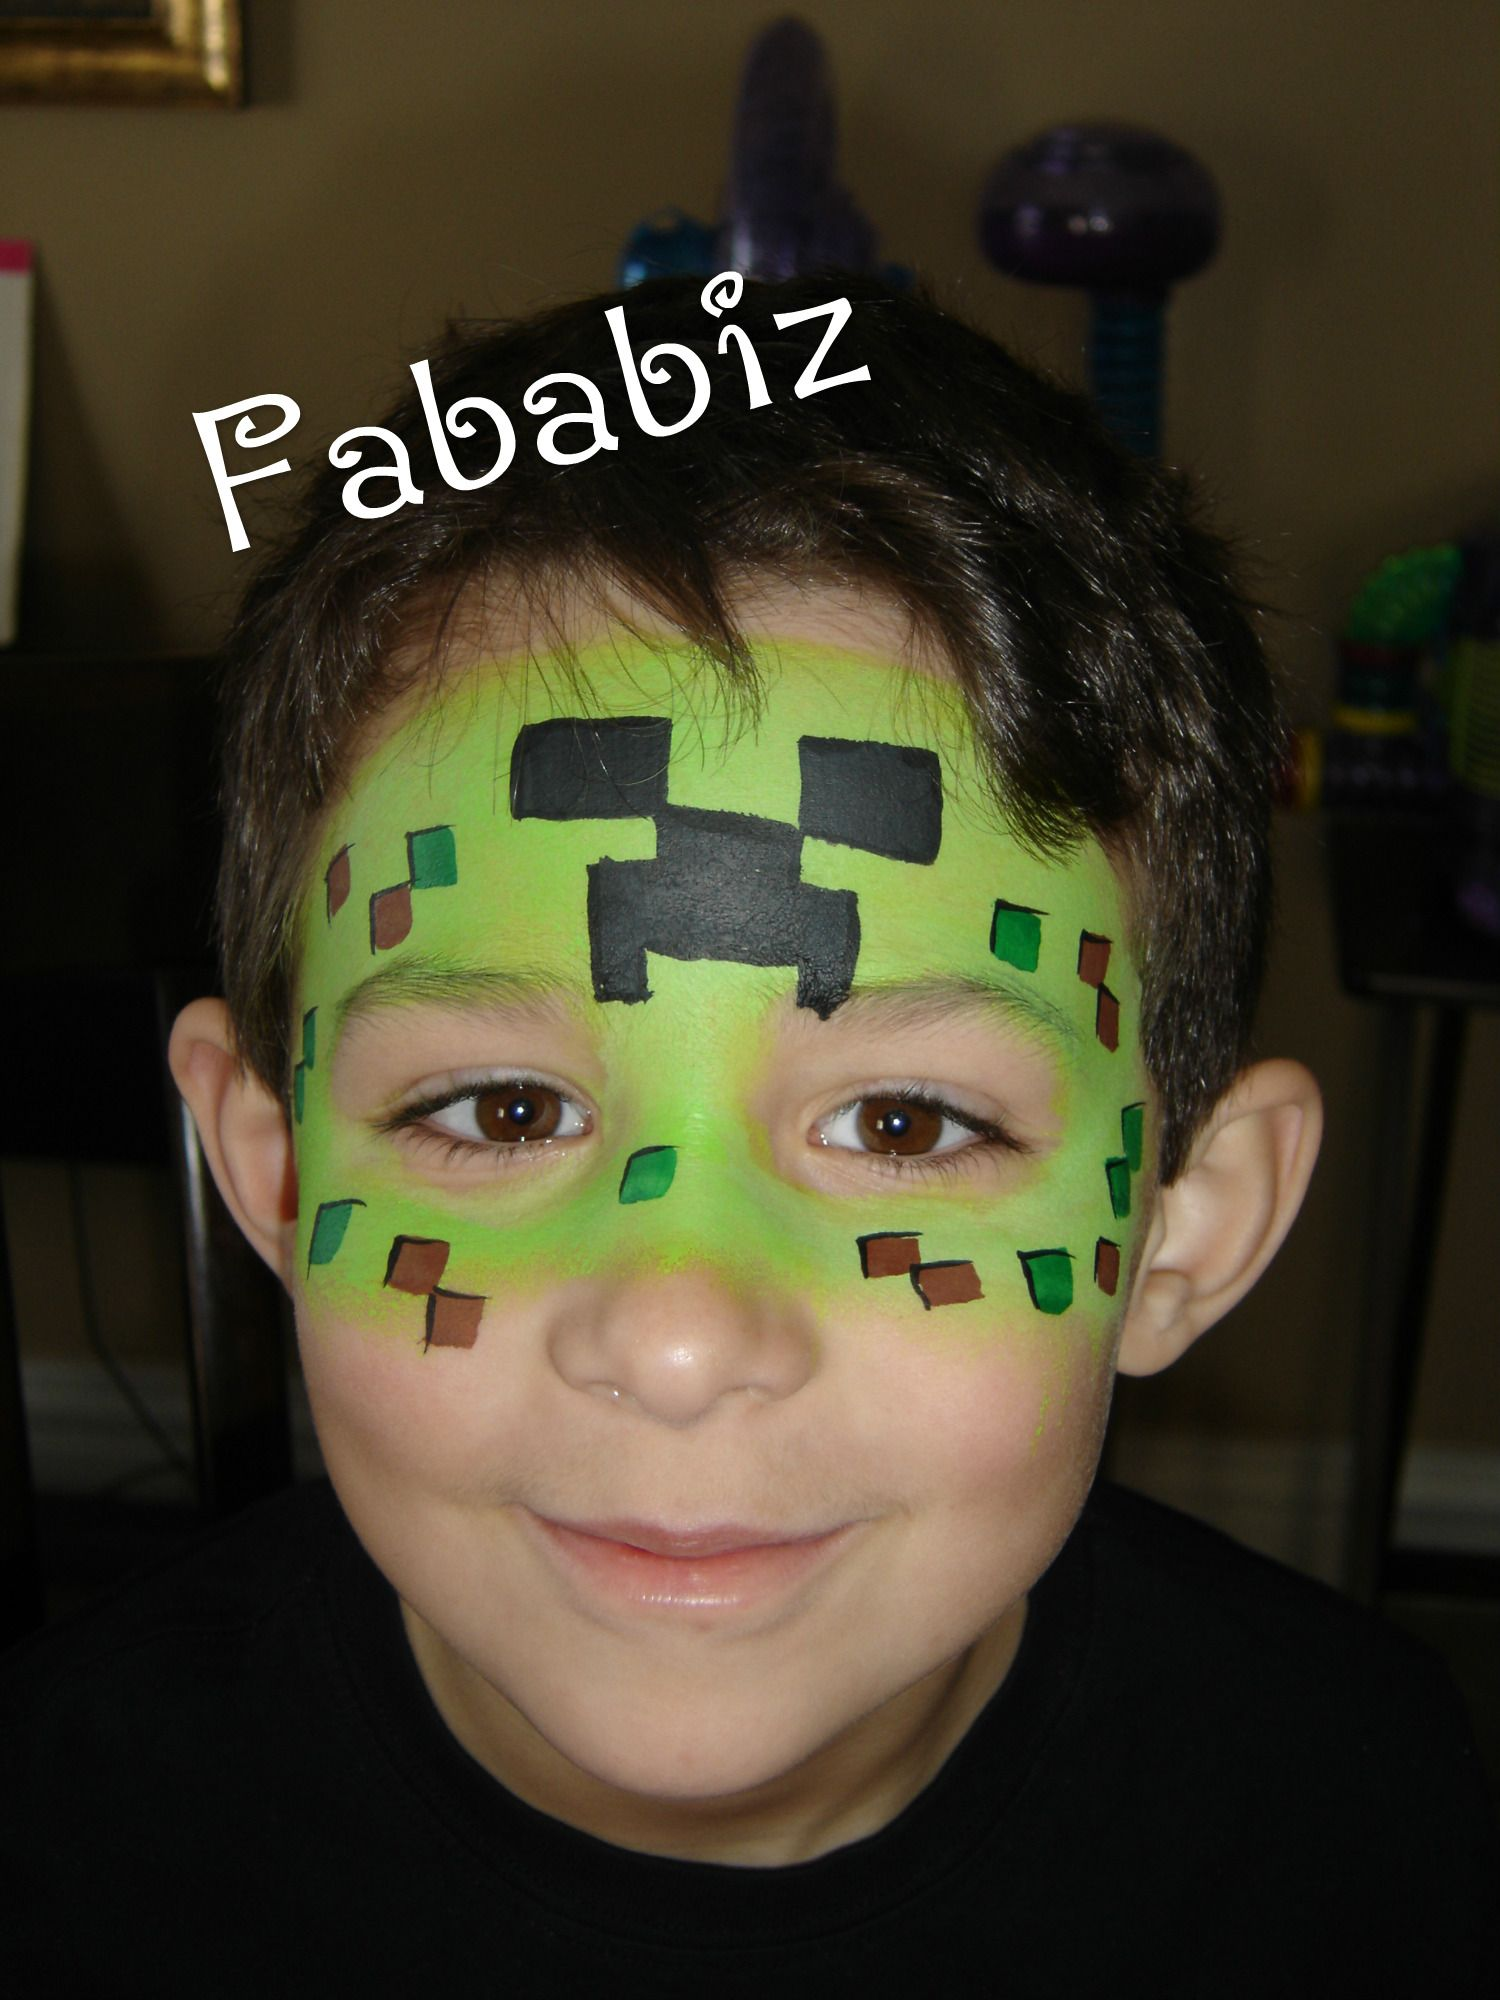 Boys favorite these days. A minecraft face painting. This is an